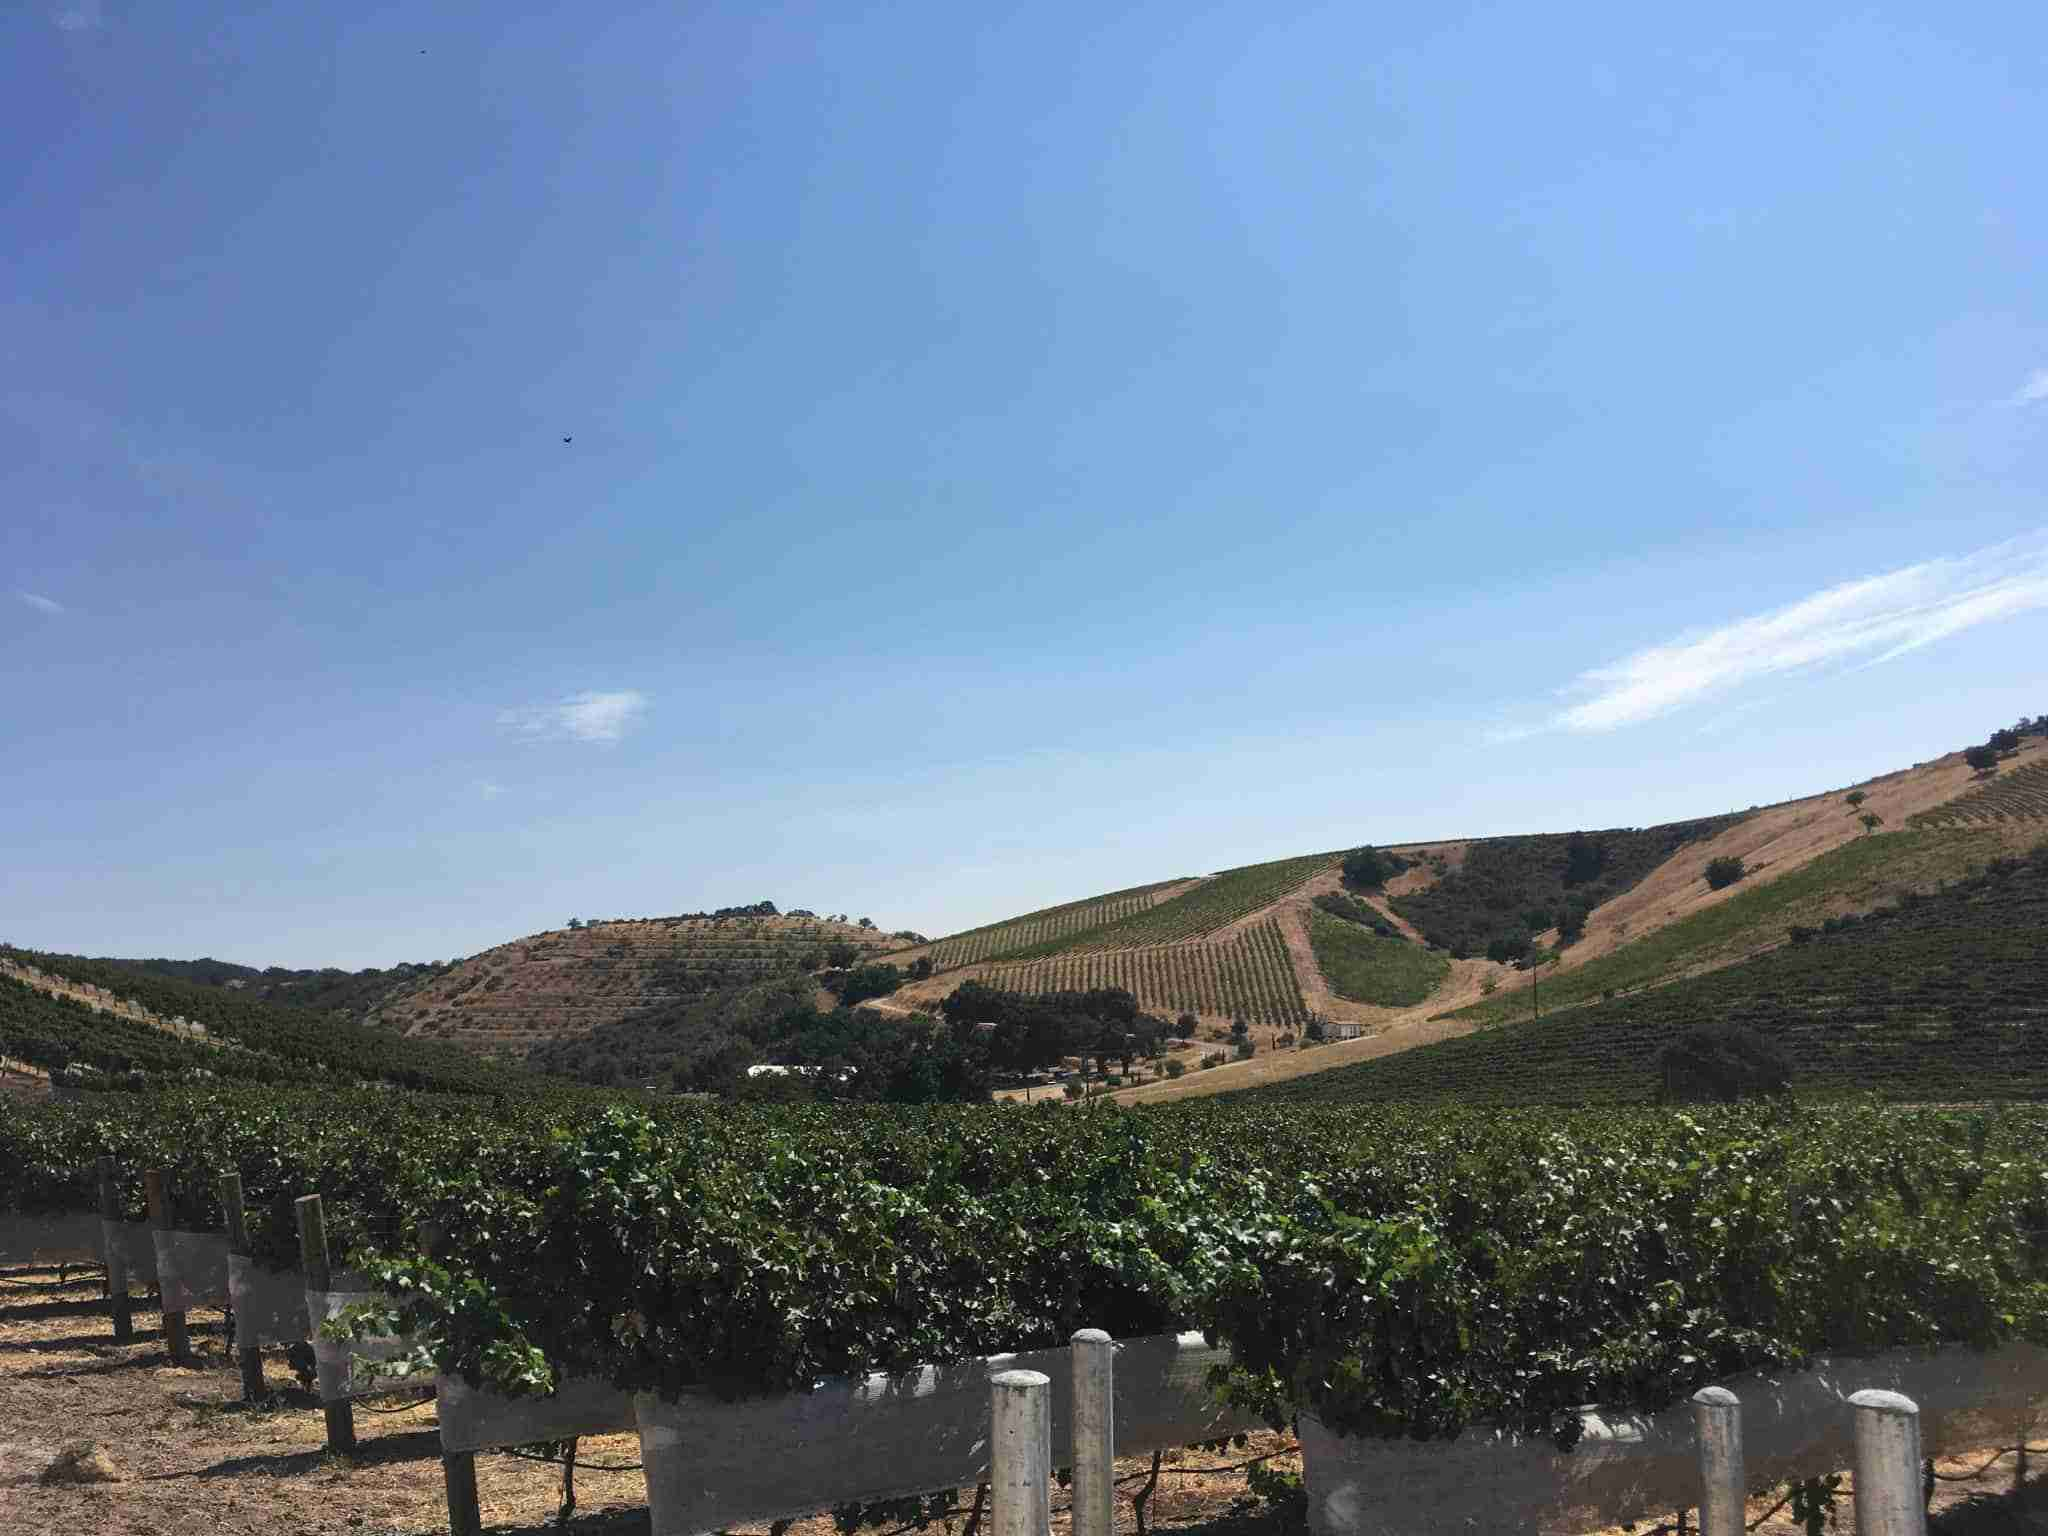 Vineyard View at Parrish Family Winery. Paso Robles, CA.